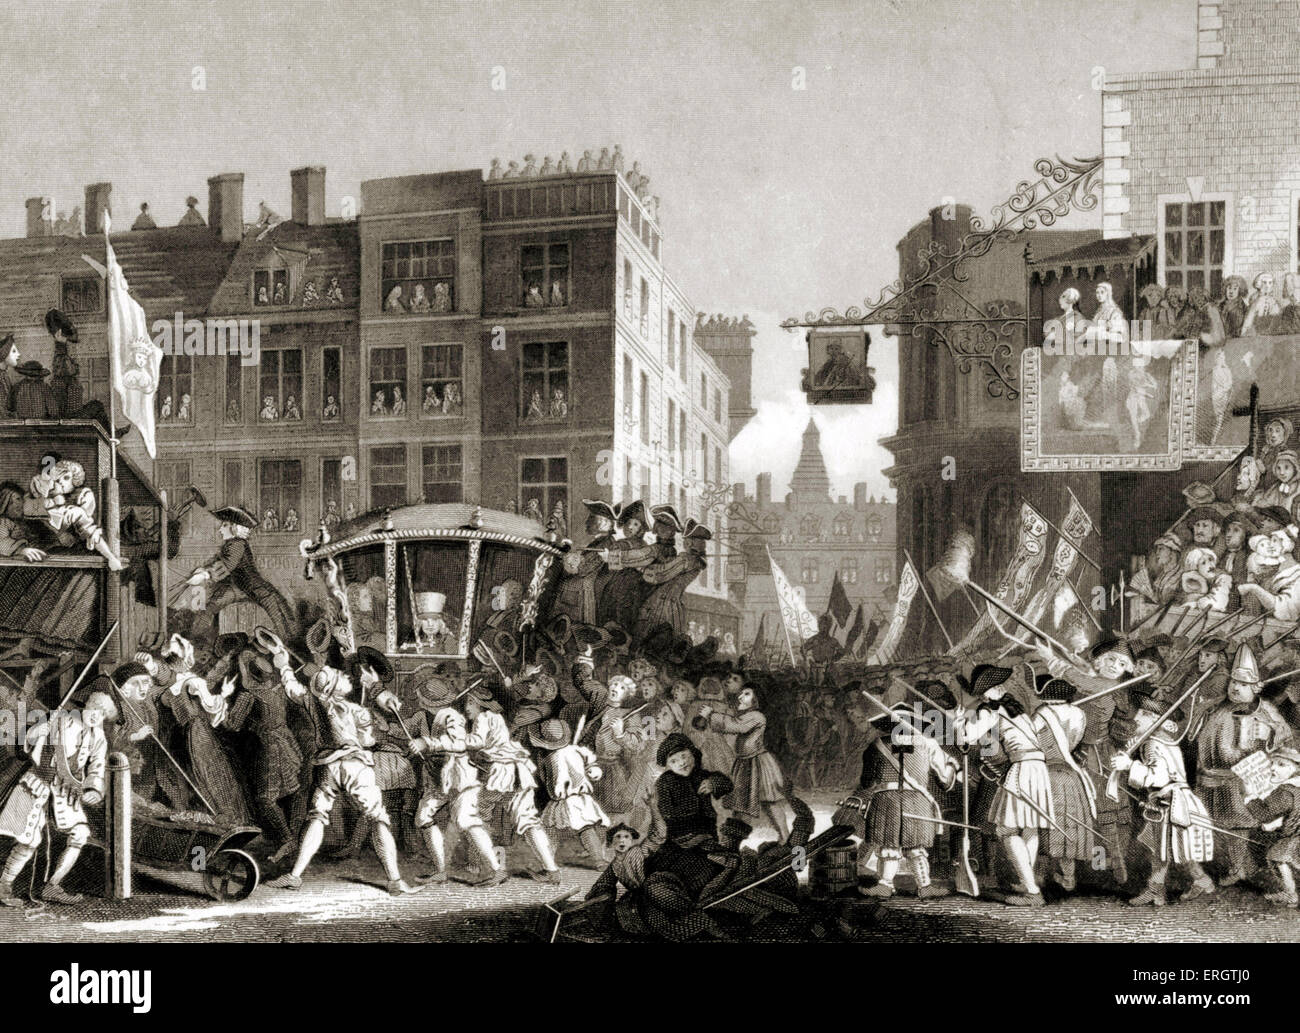 Goodchild as Lord Mayor of London - engraving by William Hogarth, English painter and artist November 10, 1697  - Stock Image